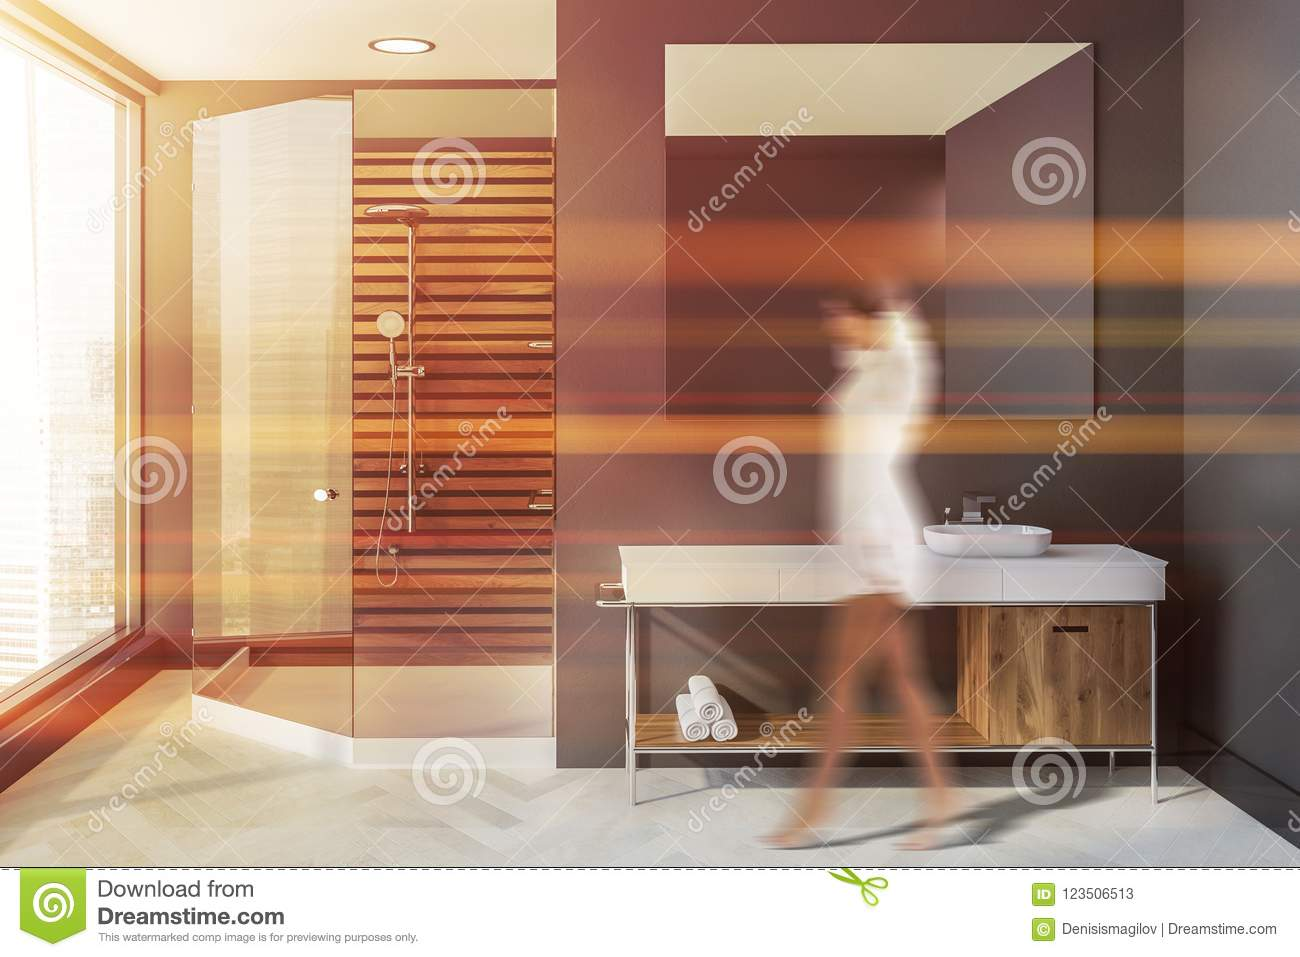 Woman In Gray Scandinavian Bathroom Sink Shower Stock Image